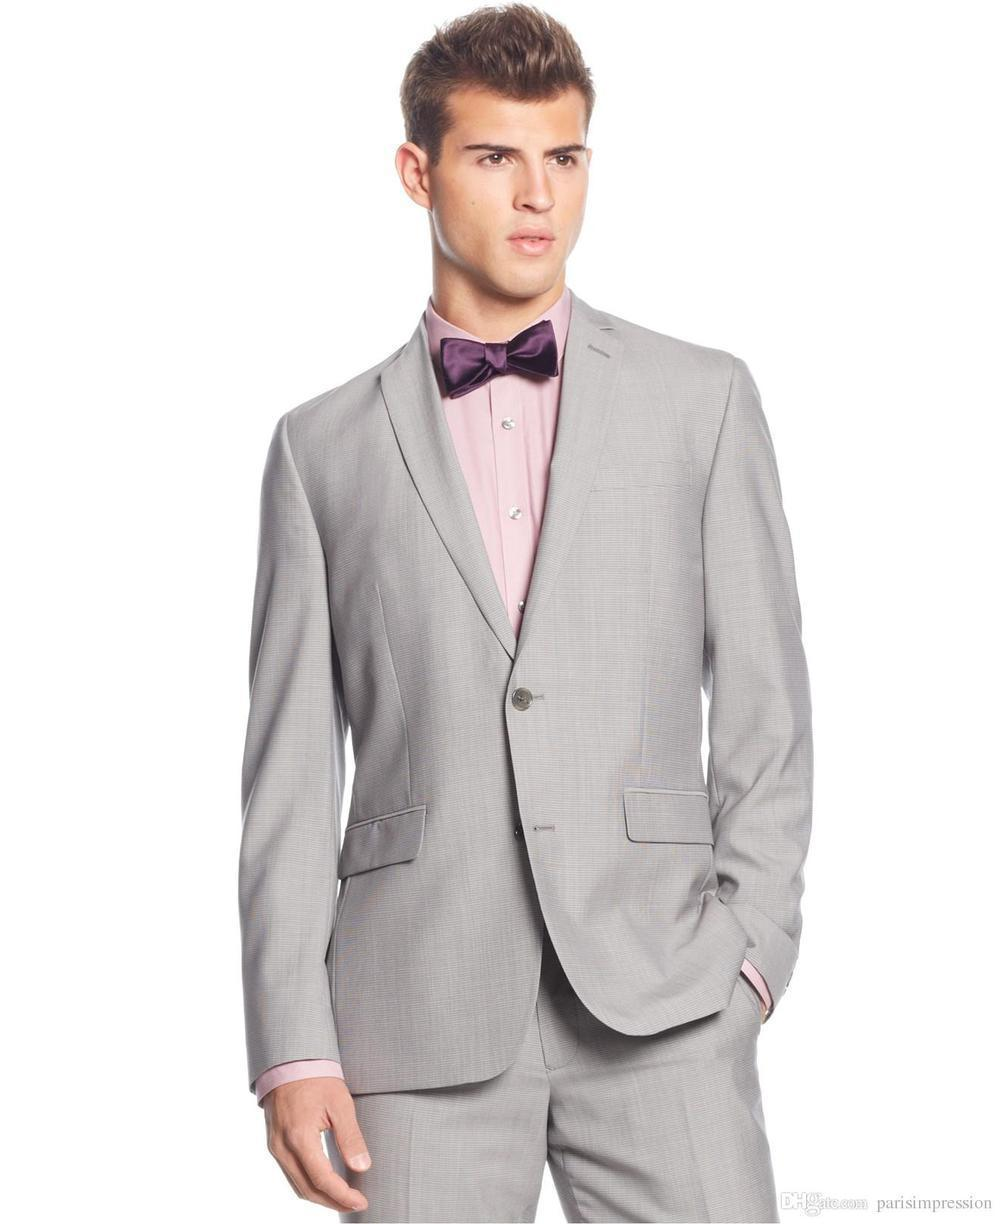 Cheap Light Gray Suits, find Light Gray Suits deals on line at ...